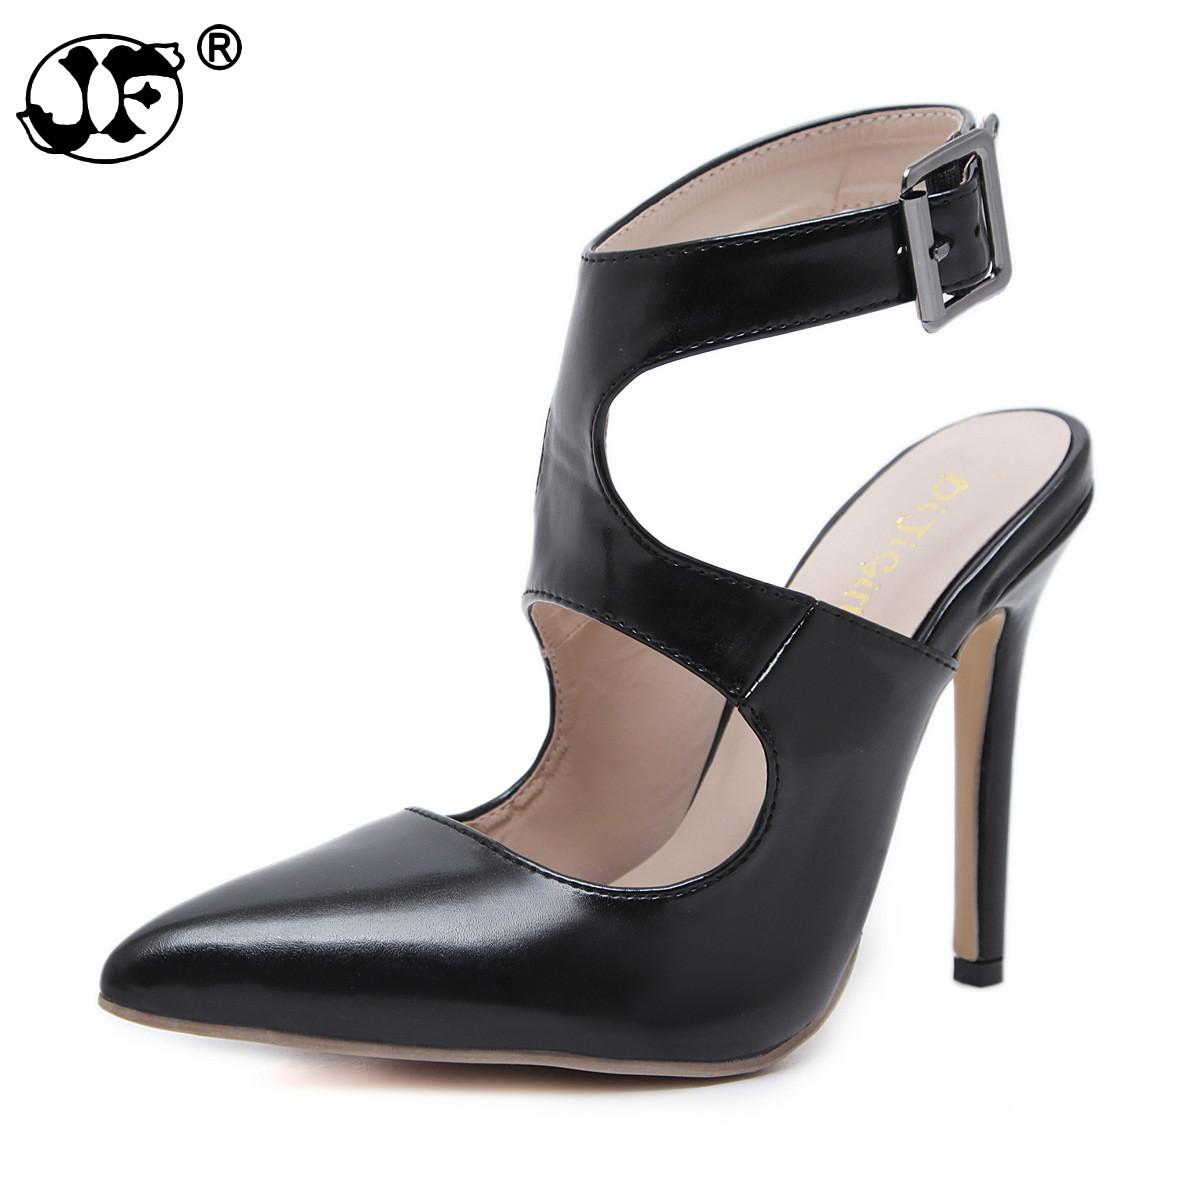 9cea3f407 Dress 2019 New Design Autumn High Heels Pumps Sandals 12.5cm Fashion  Pointed Toe Buckle Strap Gladiator Thin Heel Woman Shoes Jkm09 Brown Shoes  Strappy ...